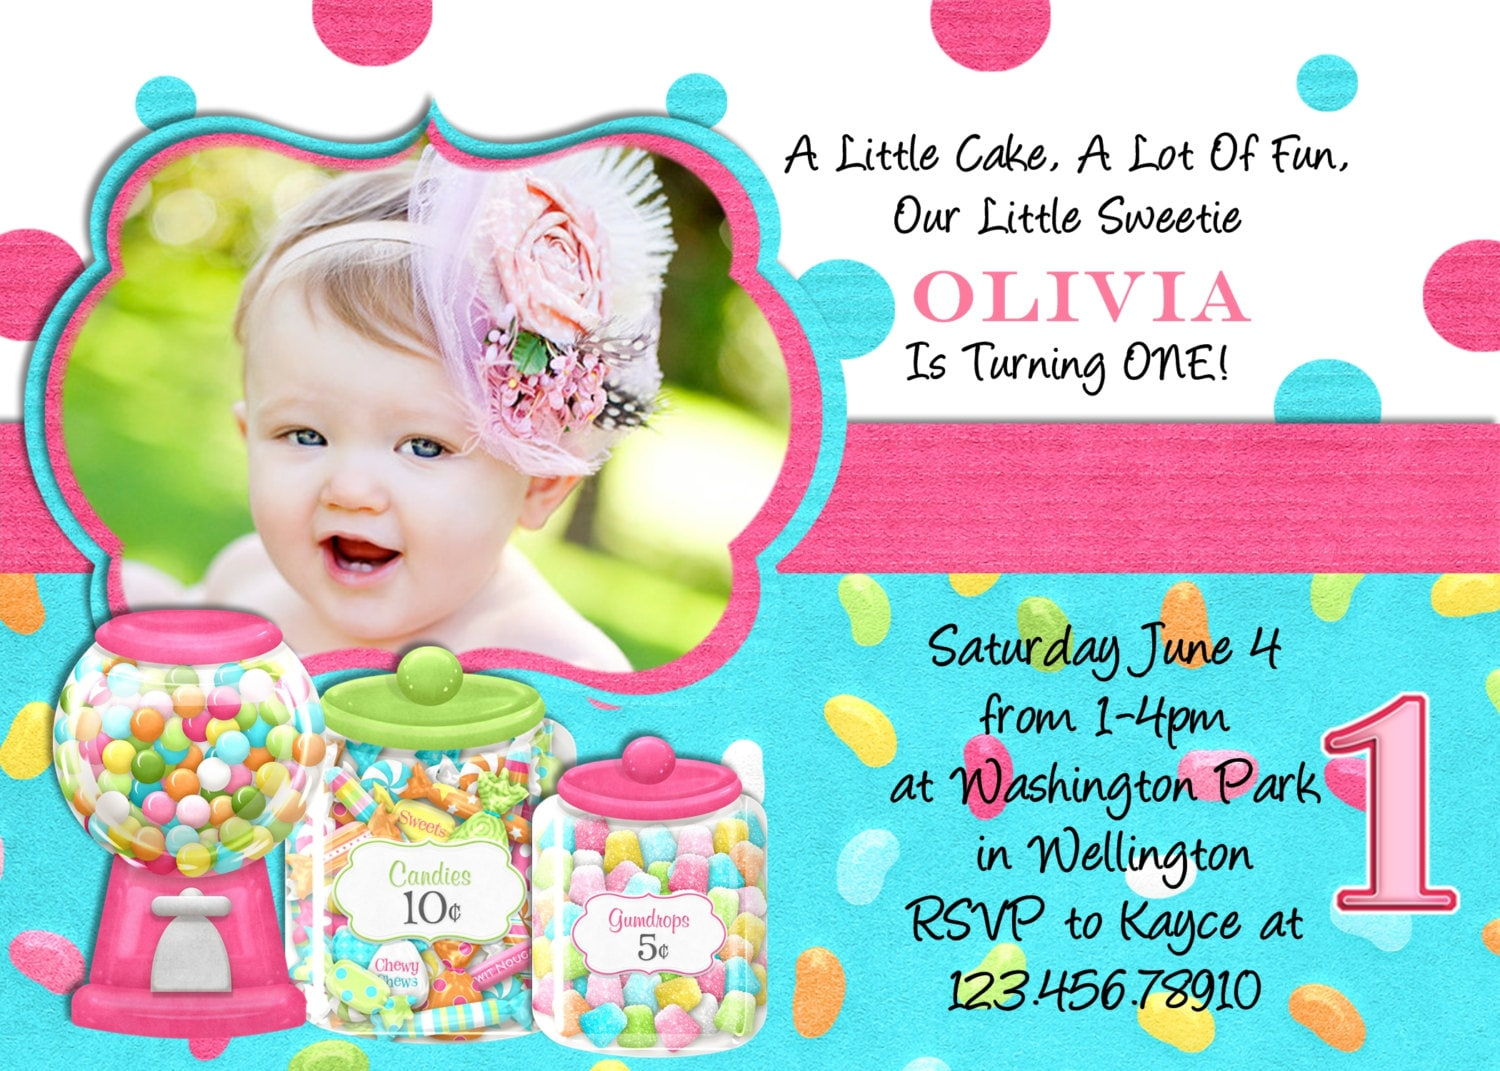 Sweet shoppe birthday party invitation printable photo card zoom monicamarmolfo Image collections